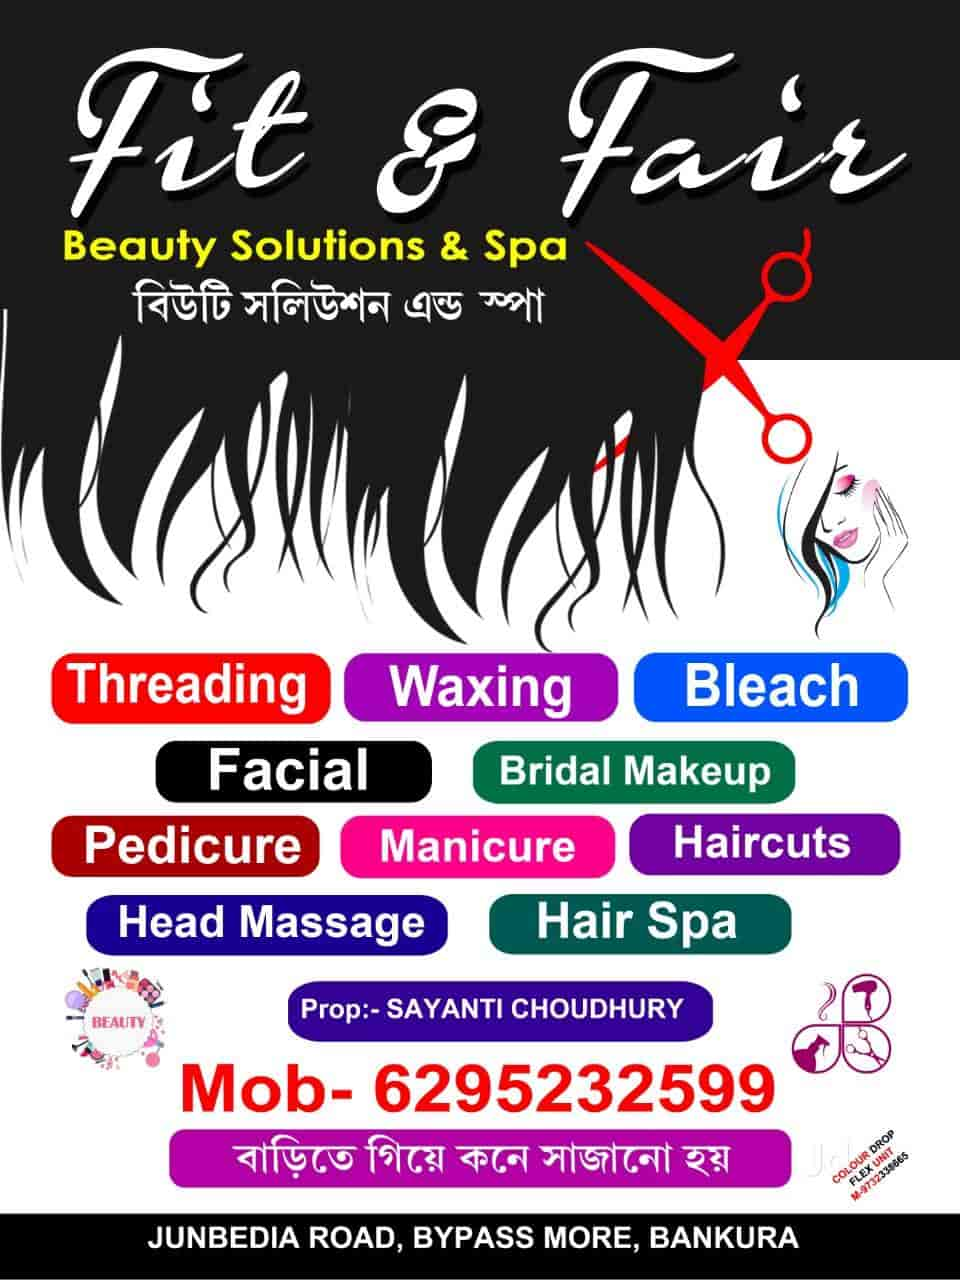 Top Women Beauty Parlours In Amarkanan Best Ladies Beauty Parlors Bankura Justdial